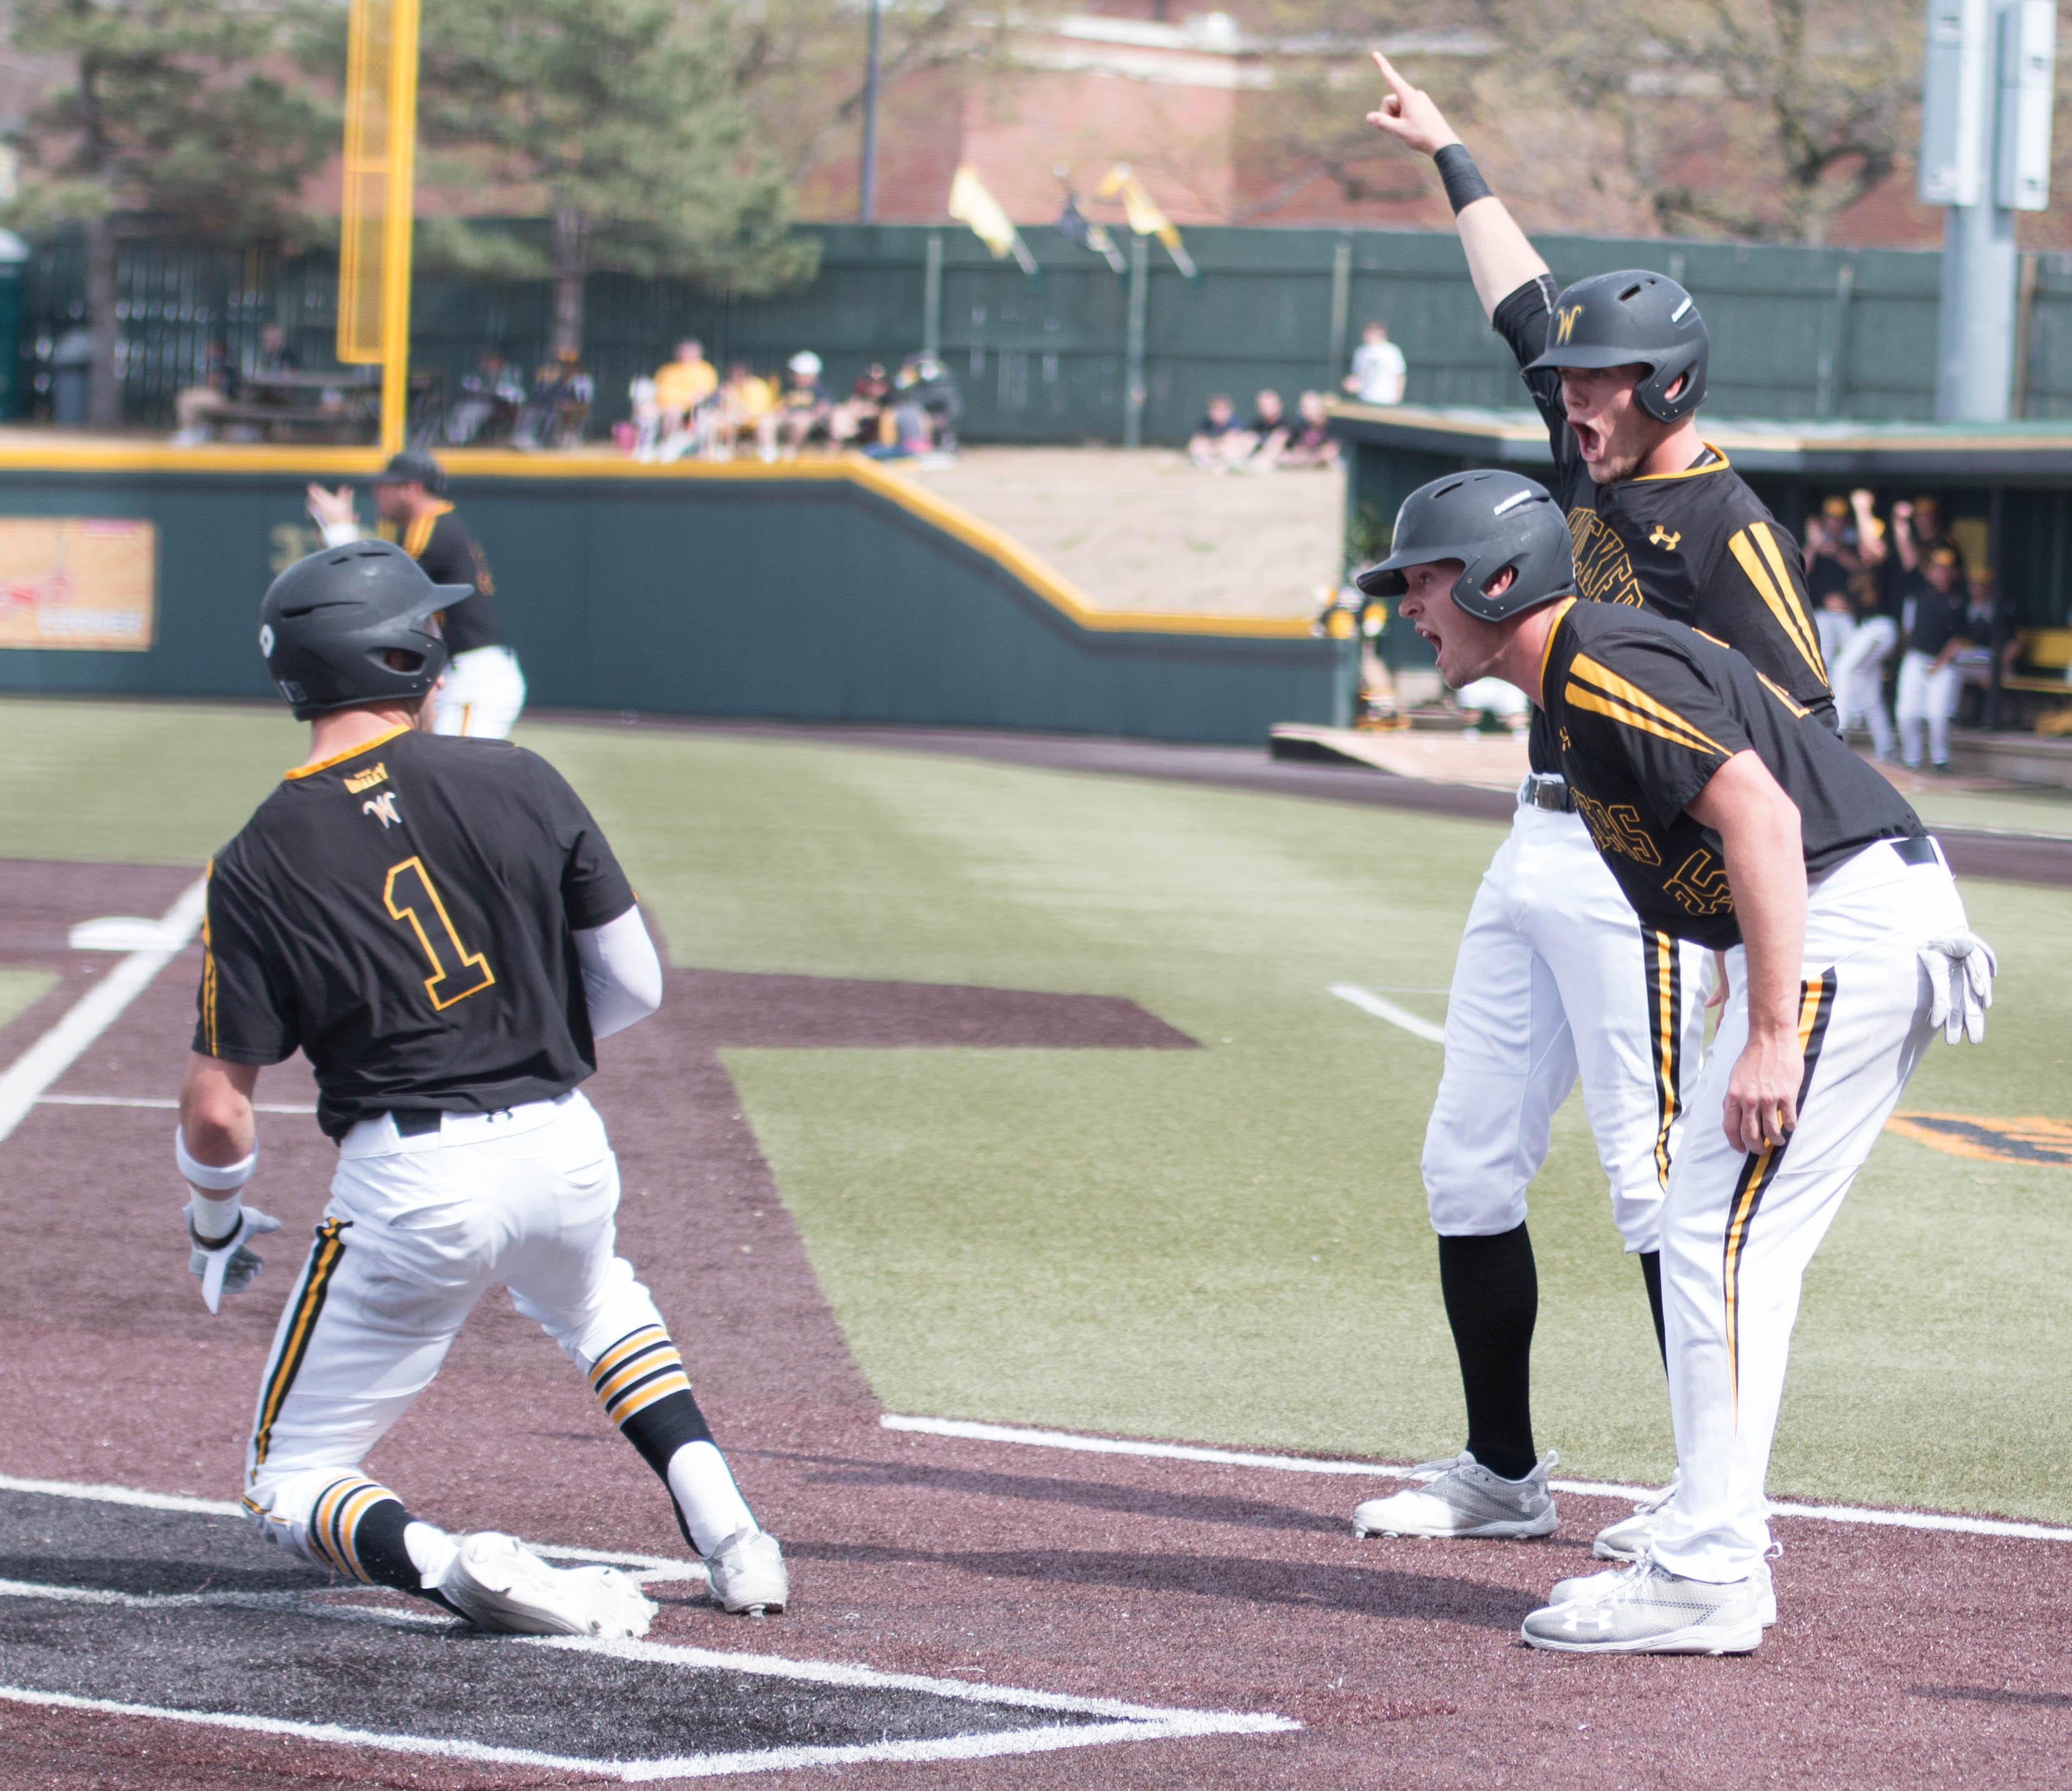 Greyson Jenista and Dayton Dugas meet Travis Young at home plate after scoring against Southern Illinois. (File photo)